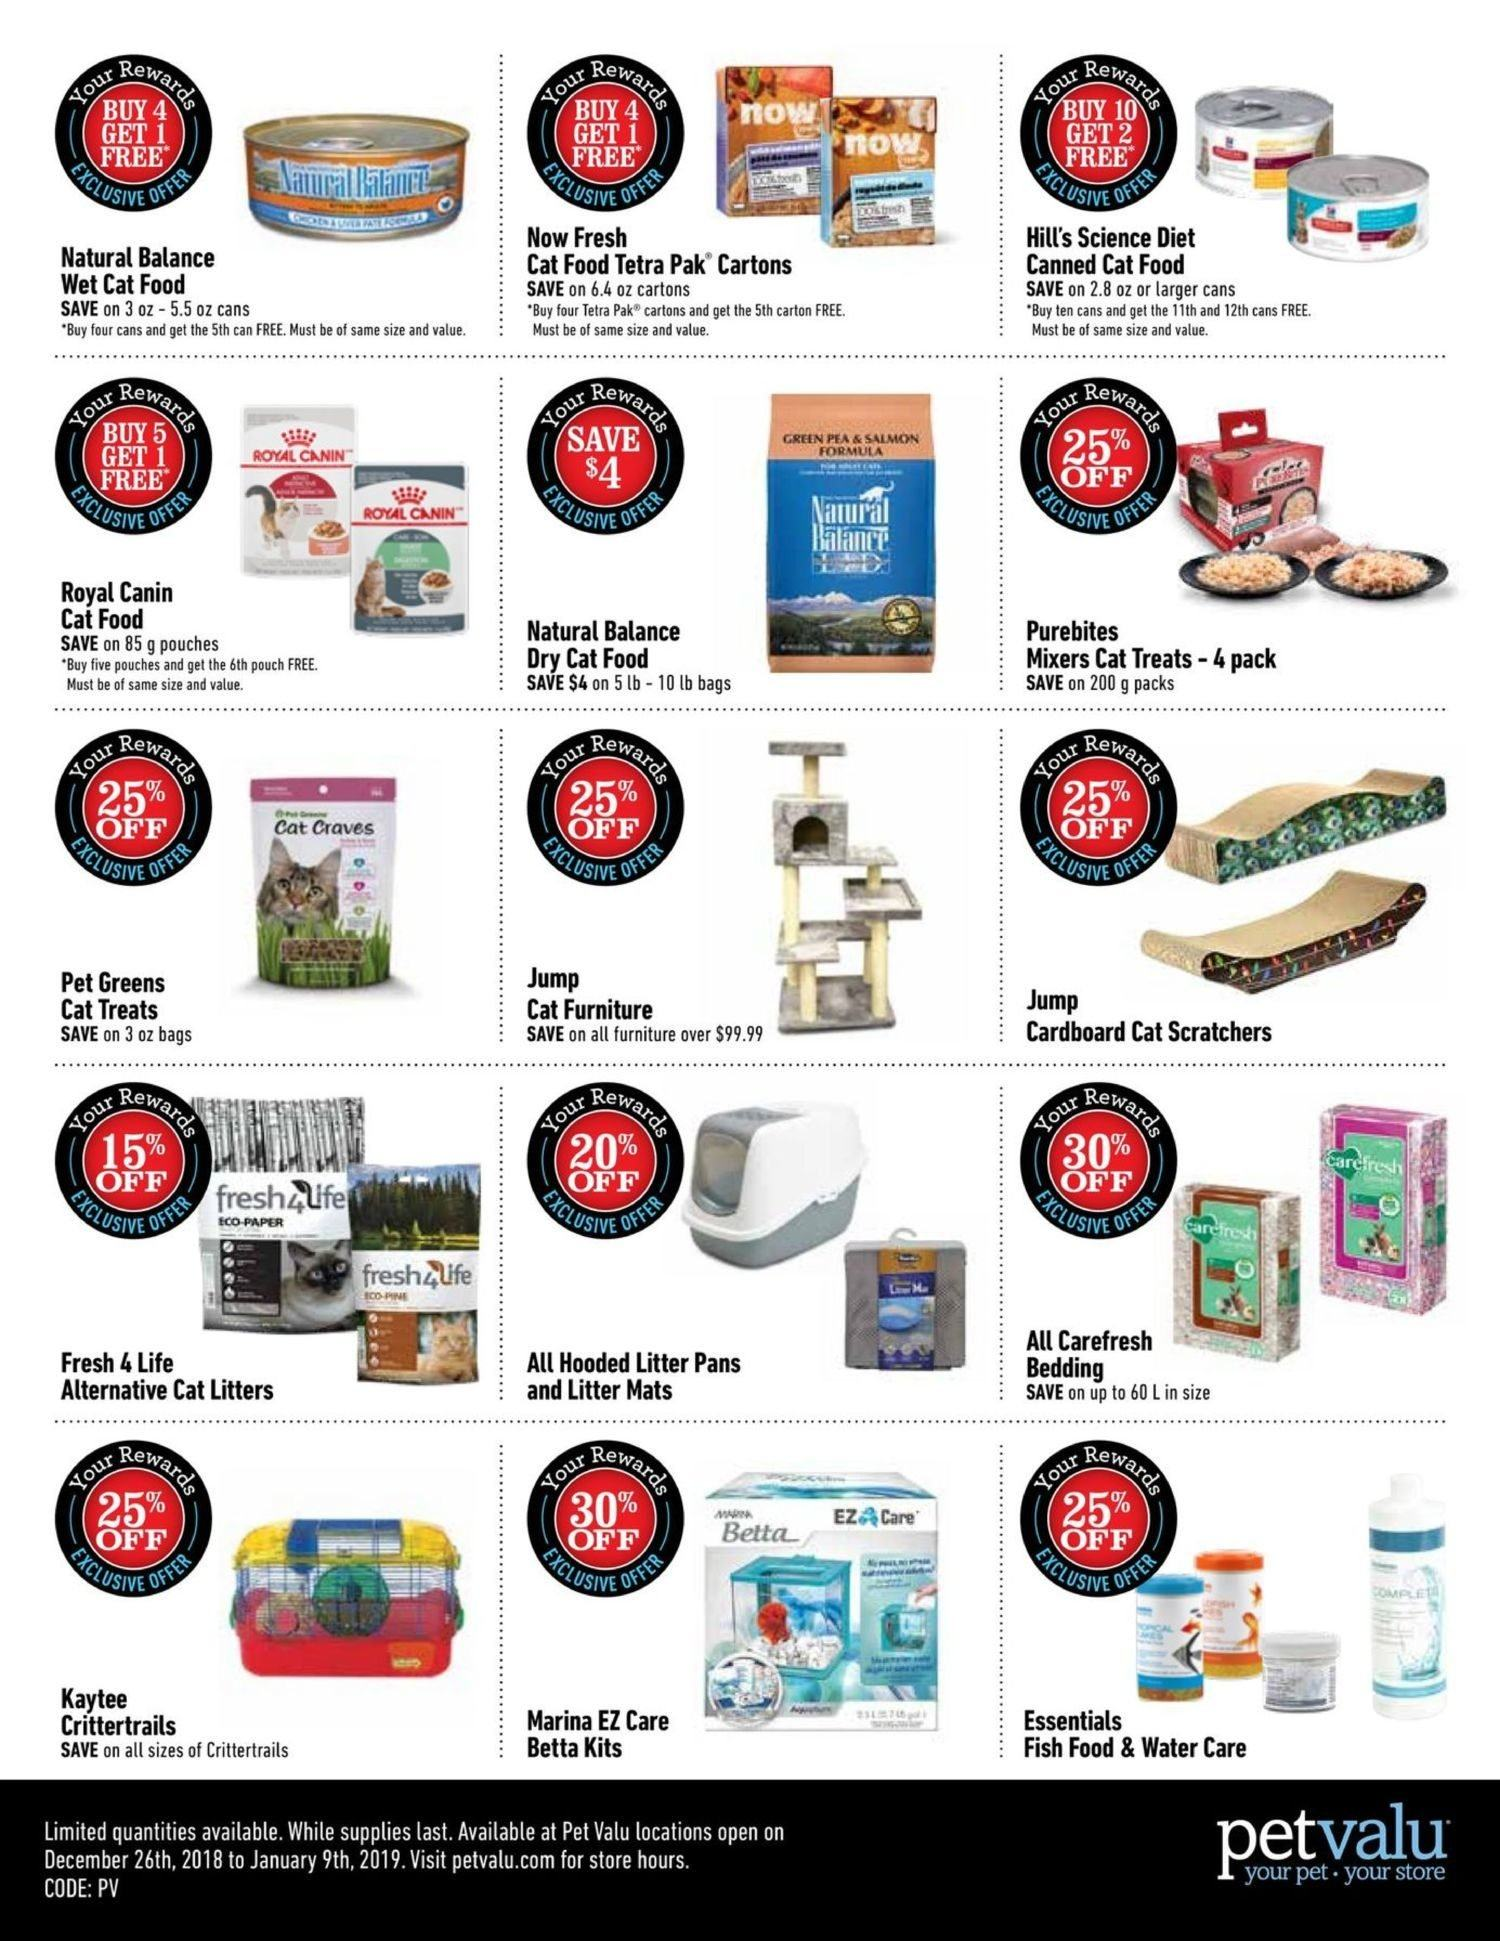 Pet Valu Flyer - December 26, 2018 - January 09, 2019 - Sales products - animal food, bag, bedding, cat food, furniture, litter, royal canin, salmon, science diet, tetra, pet, four. Page 2.